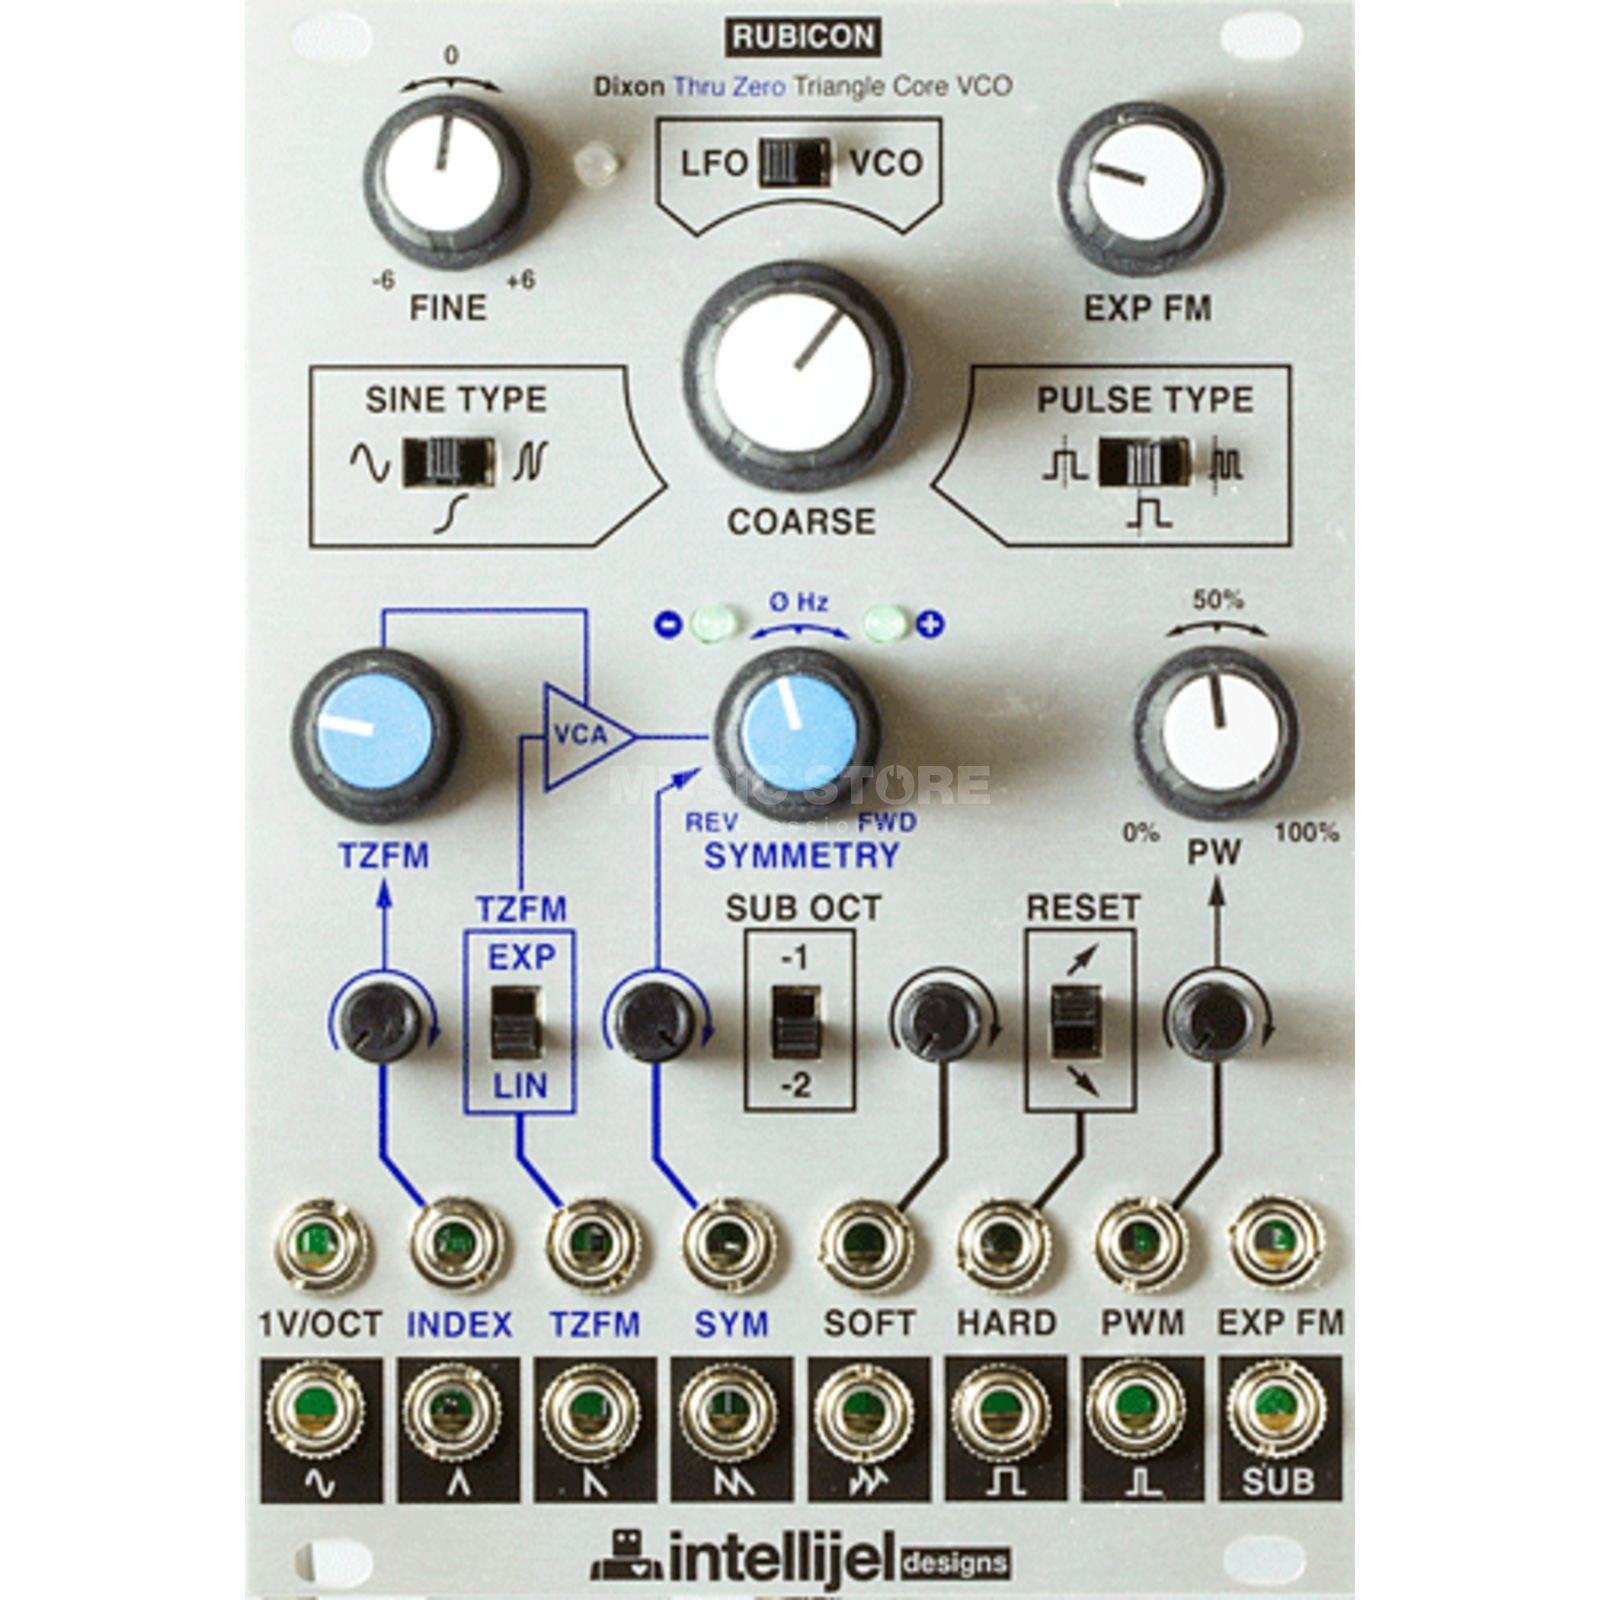 Intellijel Rubicon Thru Zero FM Triangle core VCO Produktbild